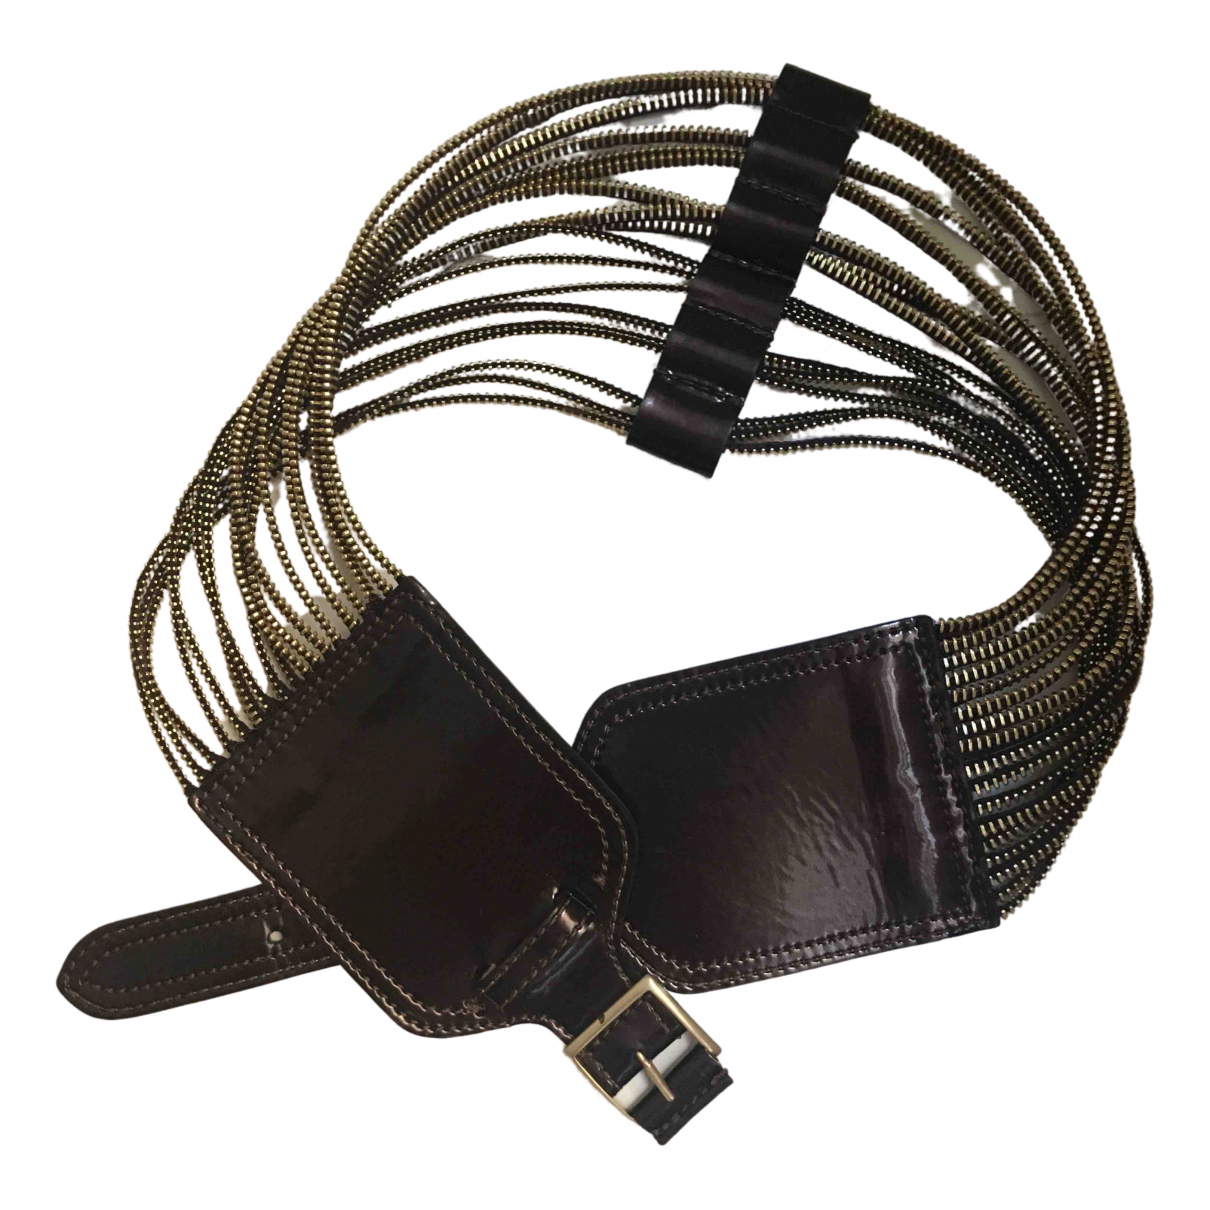 Emporio Armani \N Brown Leather belt for Women 70 cm